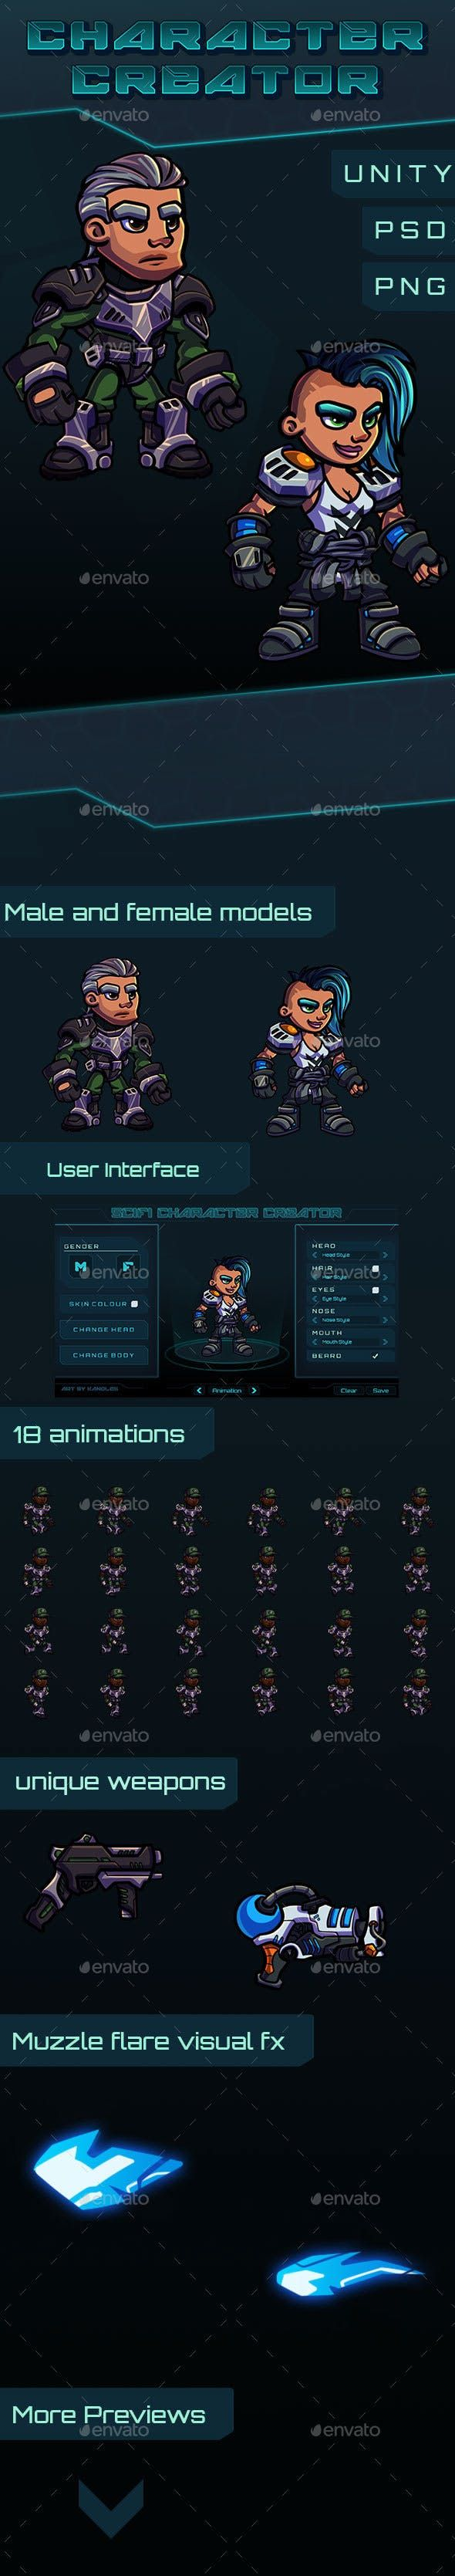 Pin by Graphic Assets on Game Sprites & Sheet Templates - Game